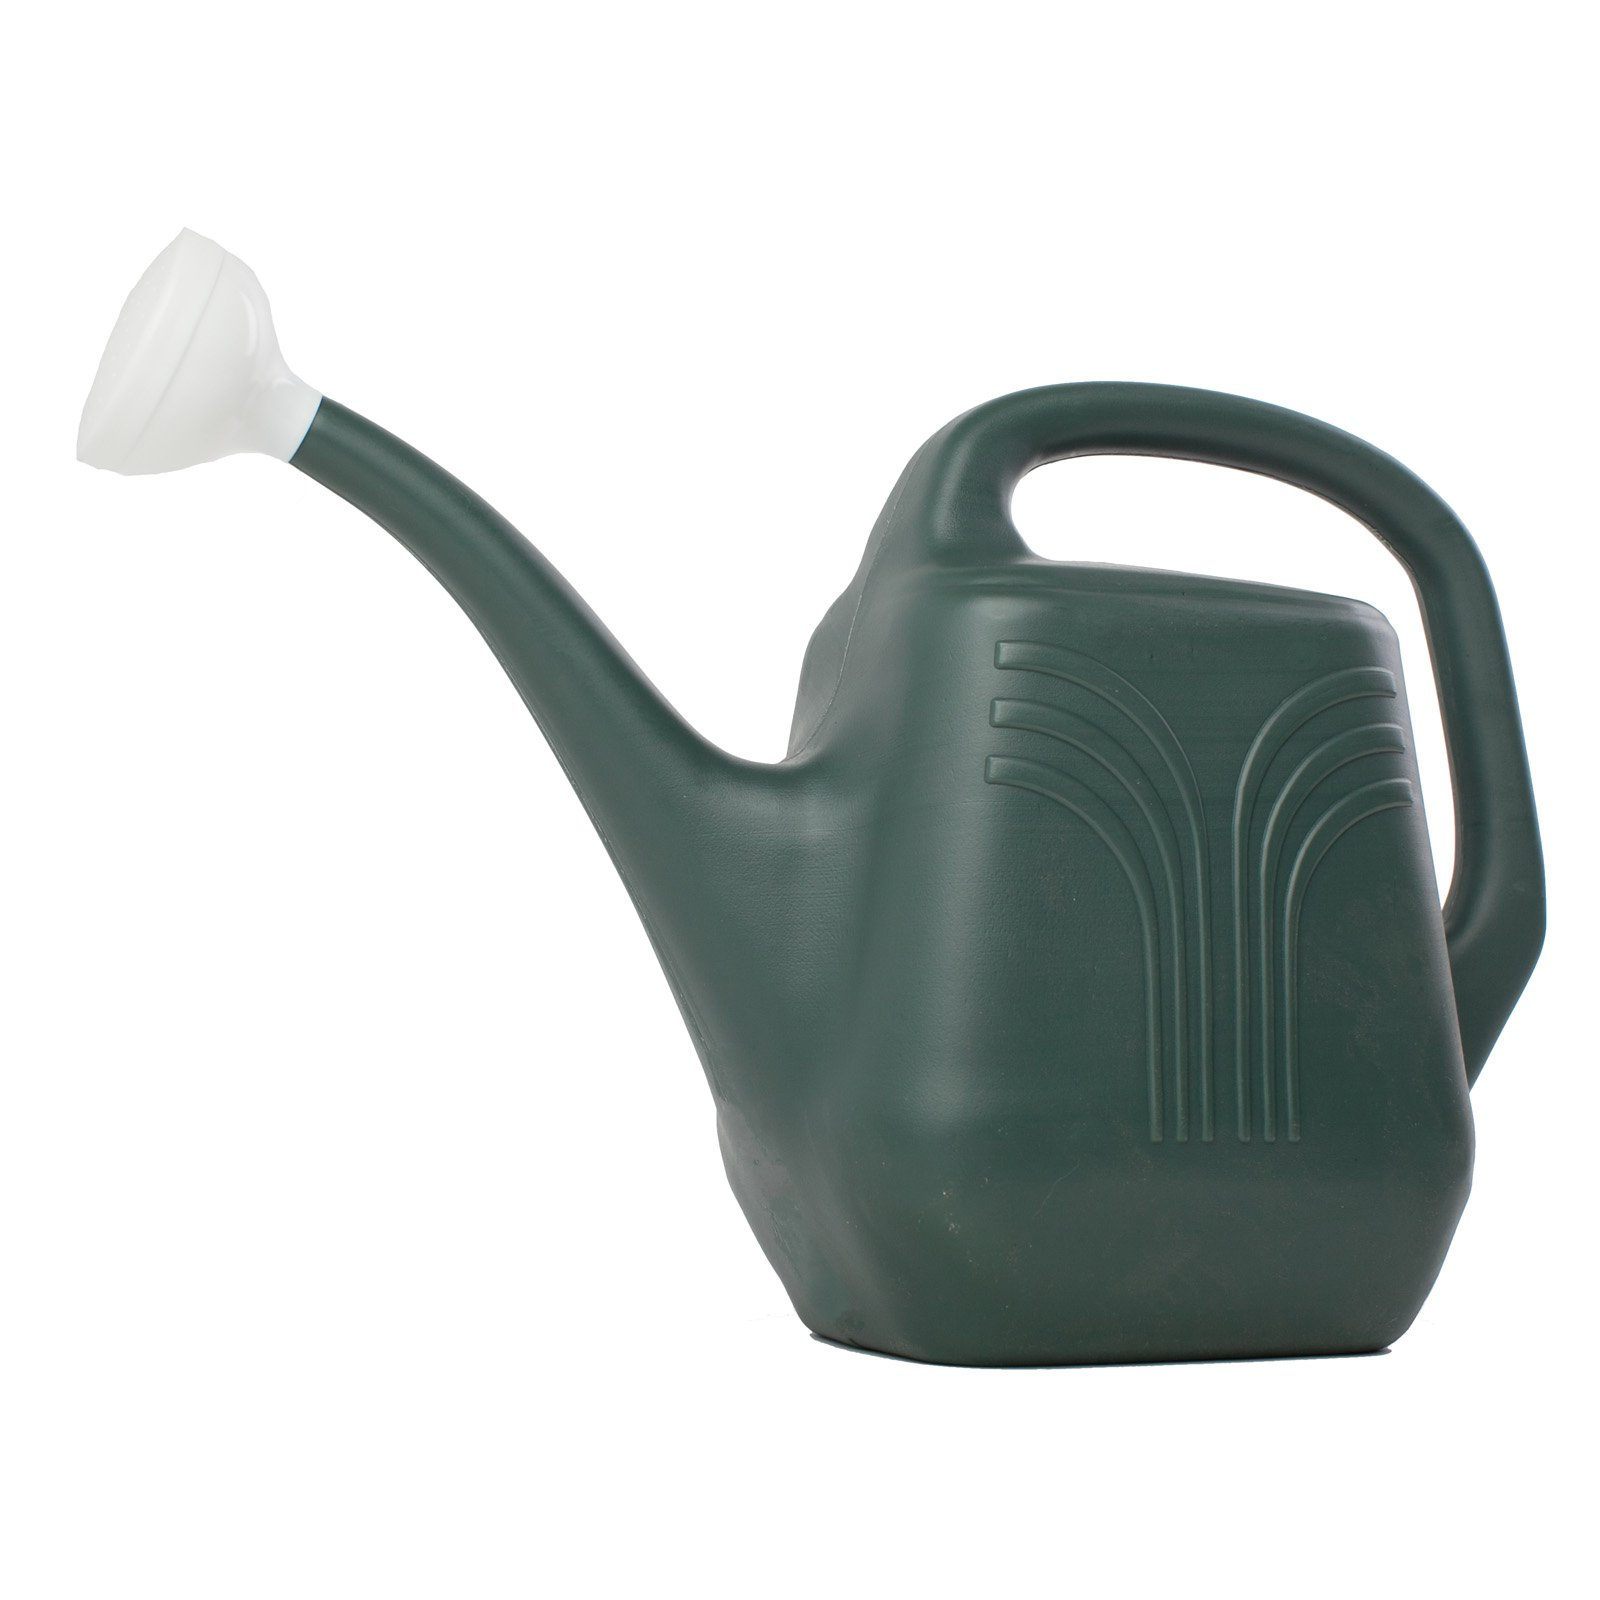 Bloem 2 gal. Watering Can Set of 12 by Overstock